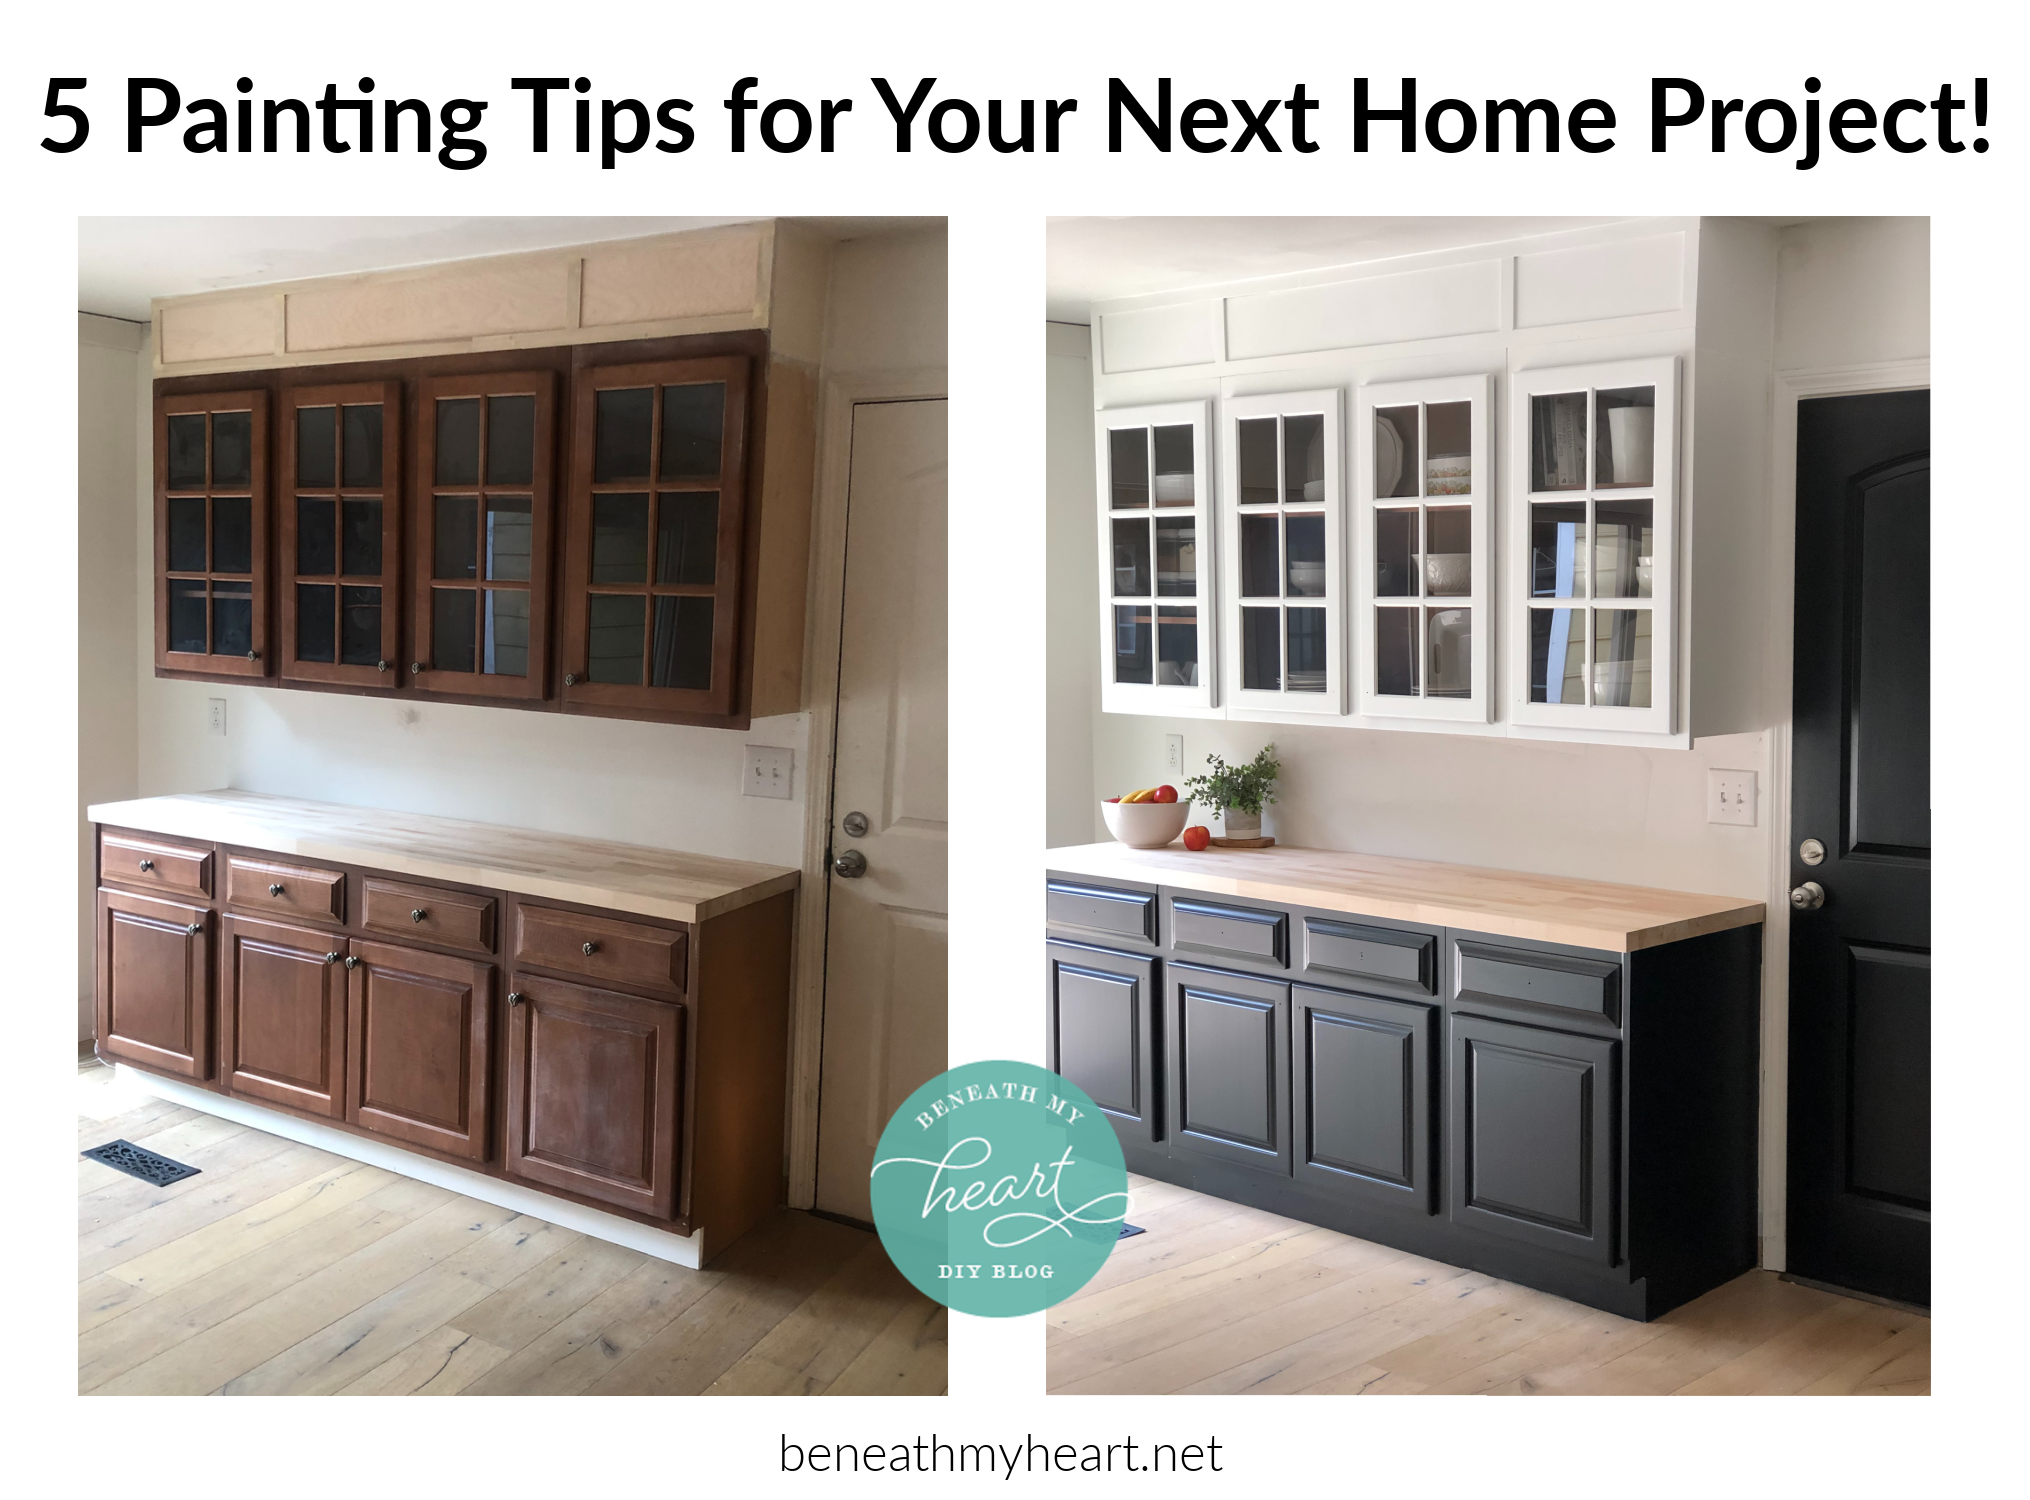 5 Paint Tips for Your Next Home Project!